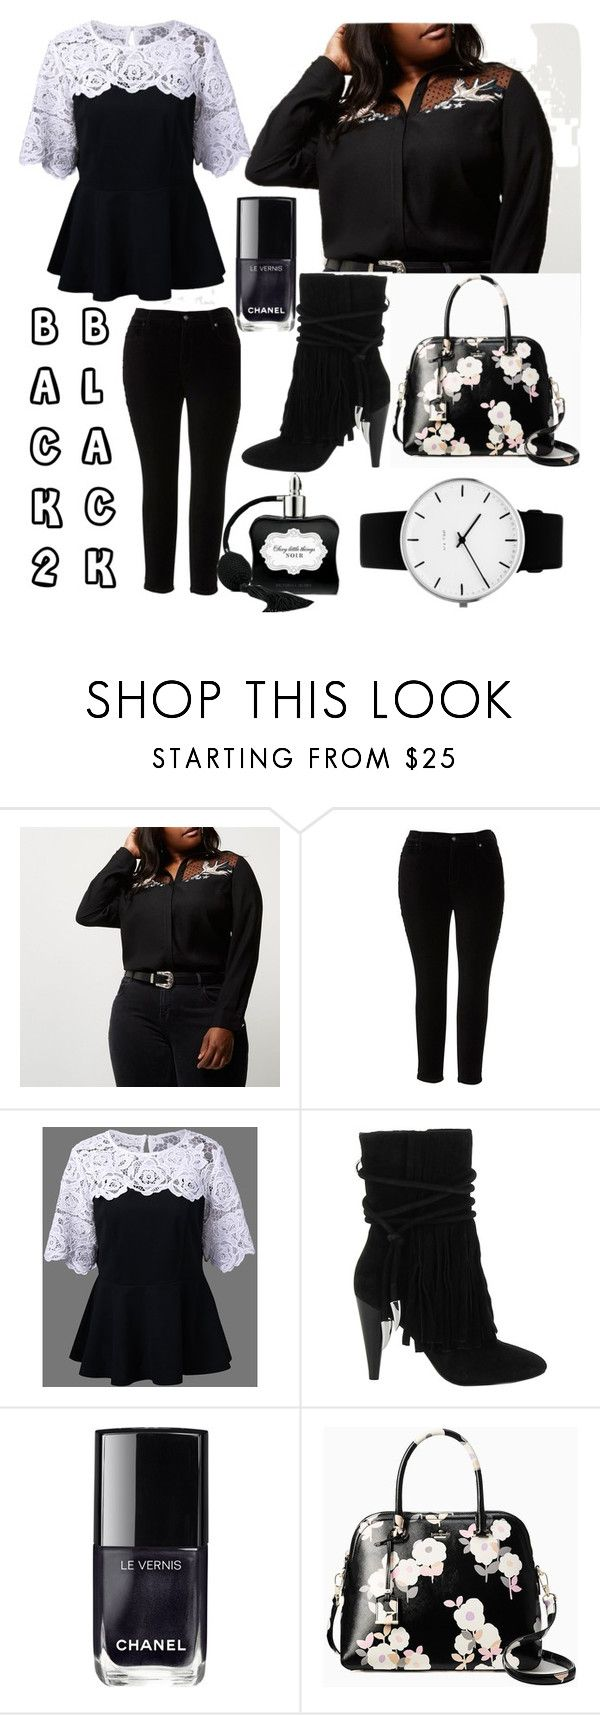 """""""back 2 black bbw"""" by plus-size-royalty ❤ liked on Polyvore featuring River Island, Melissa McCarthy Seven7, Ash, Chanel, Kate Spade, Rosendahl and plus size clothing"""